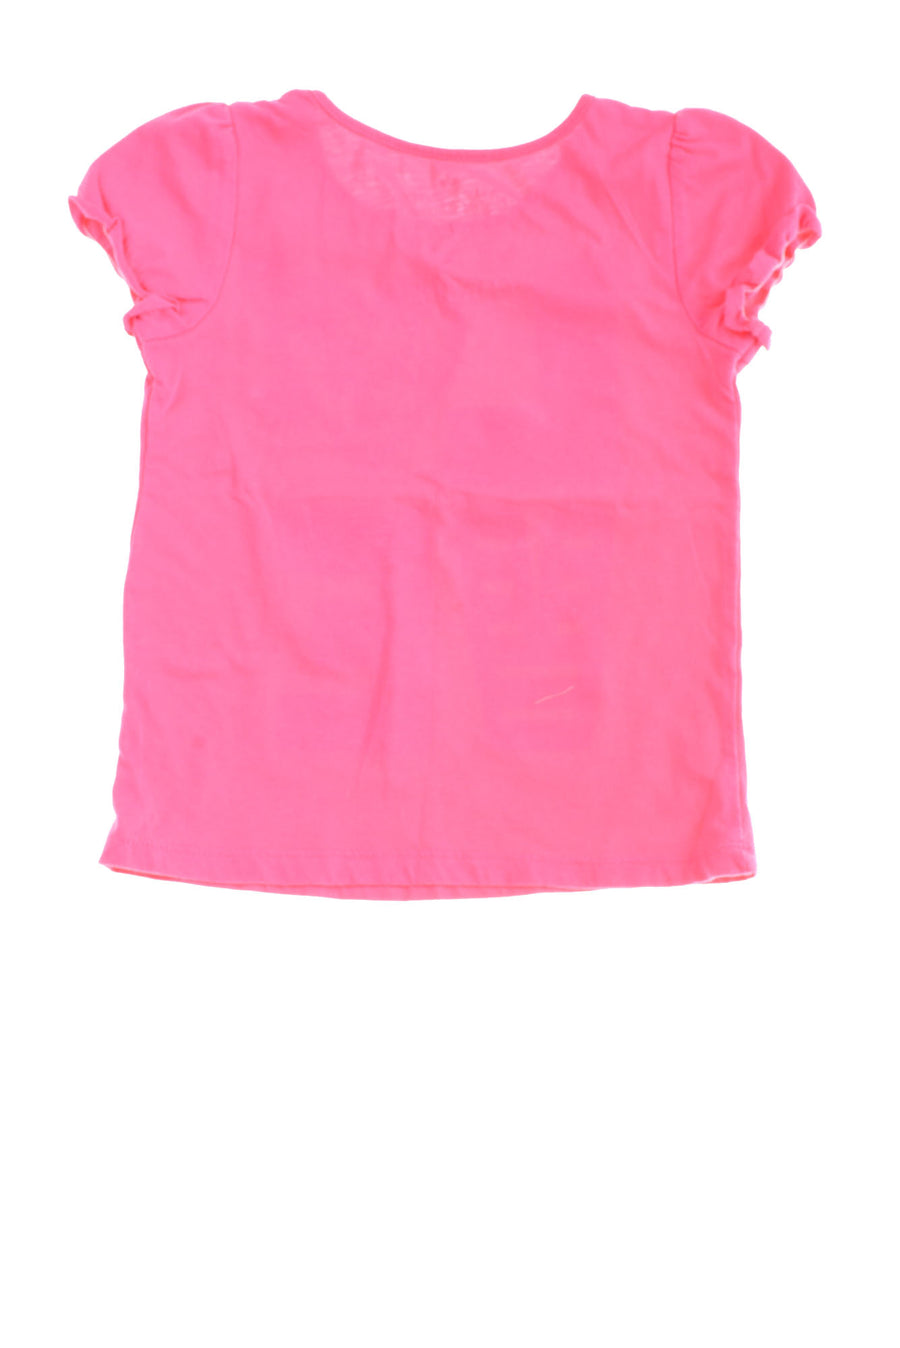 USED Epic Threads Baby Girl's Top 5 Pink